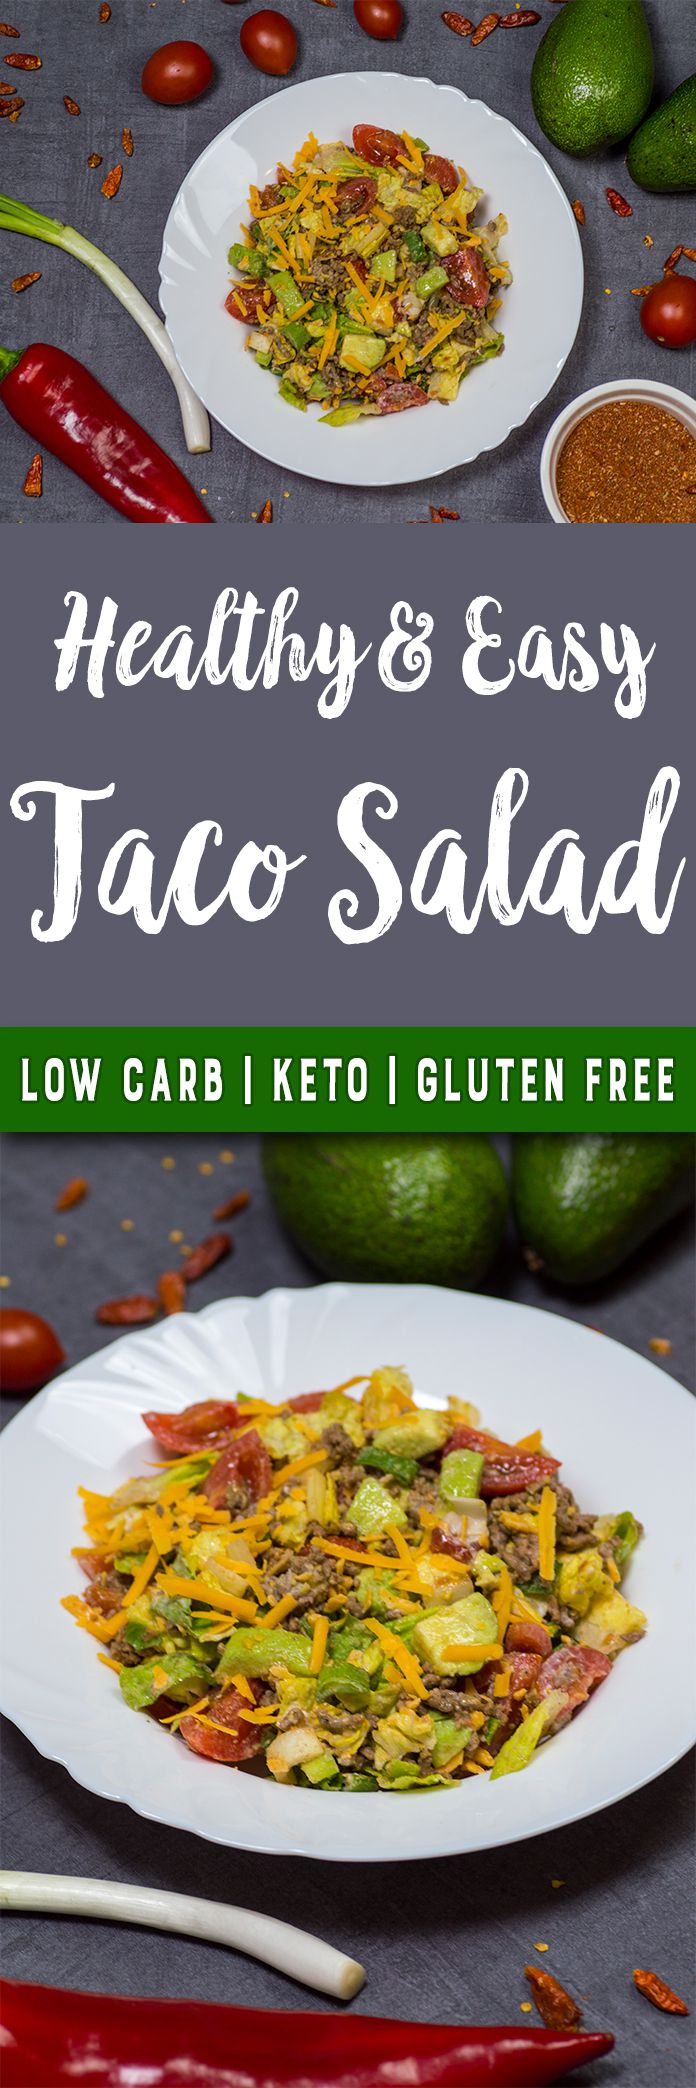 This keto taco salad is ready in just 20 minutes only with wholesome ingredients. If you are craving a delicious, creamy, and spicy Mexican dish, you should definitely try this easy salad. A super easy yet delicious and healthy taco salad recipe that you will instantly love. This salad is ready to eat in only 20 minutes and has only 4g net carbs per serving. It\'s a great alternative to a high carb meal when craving Mexican food.